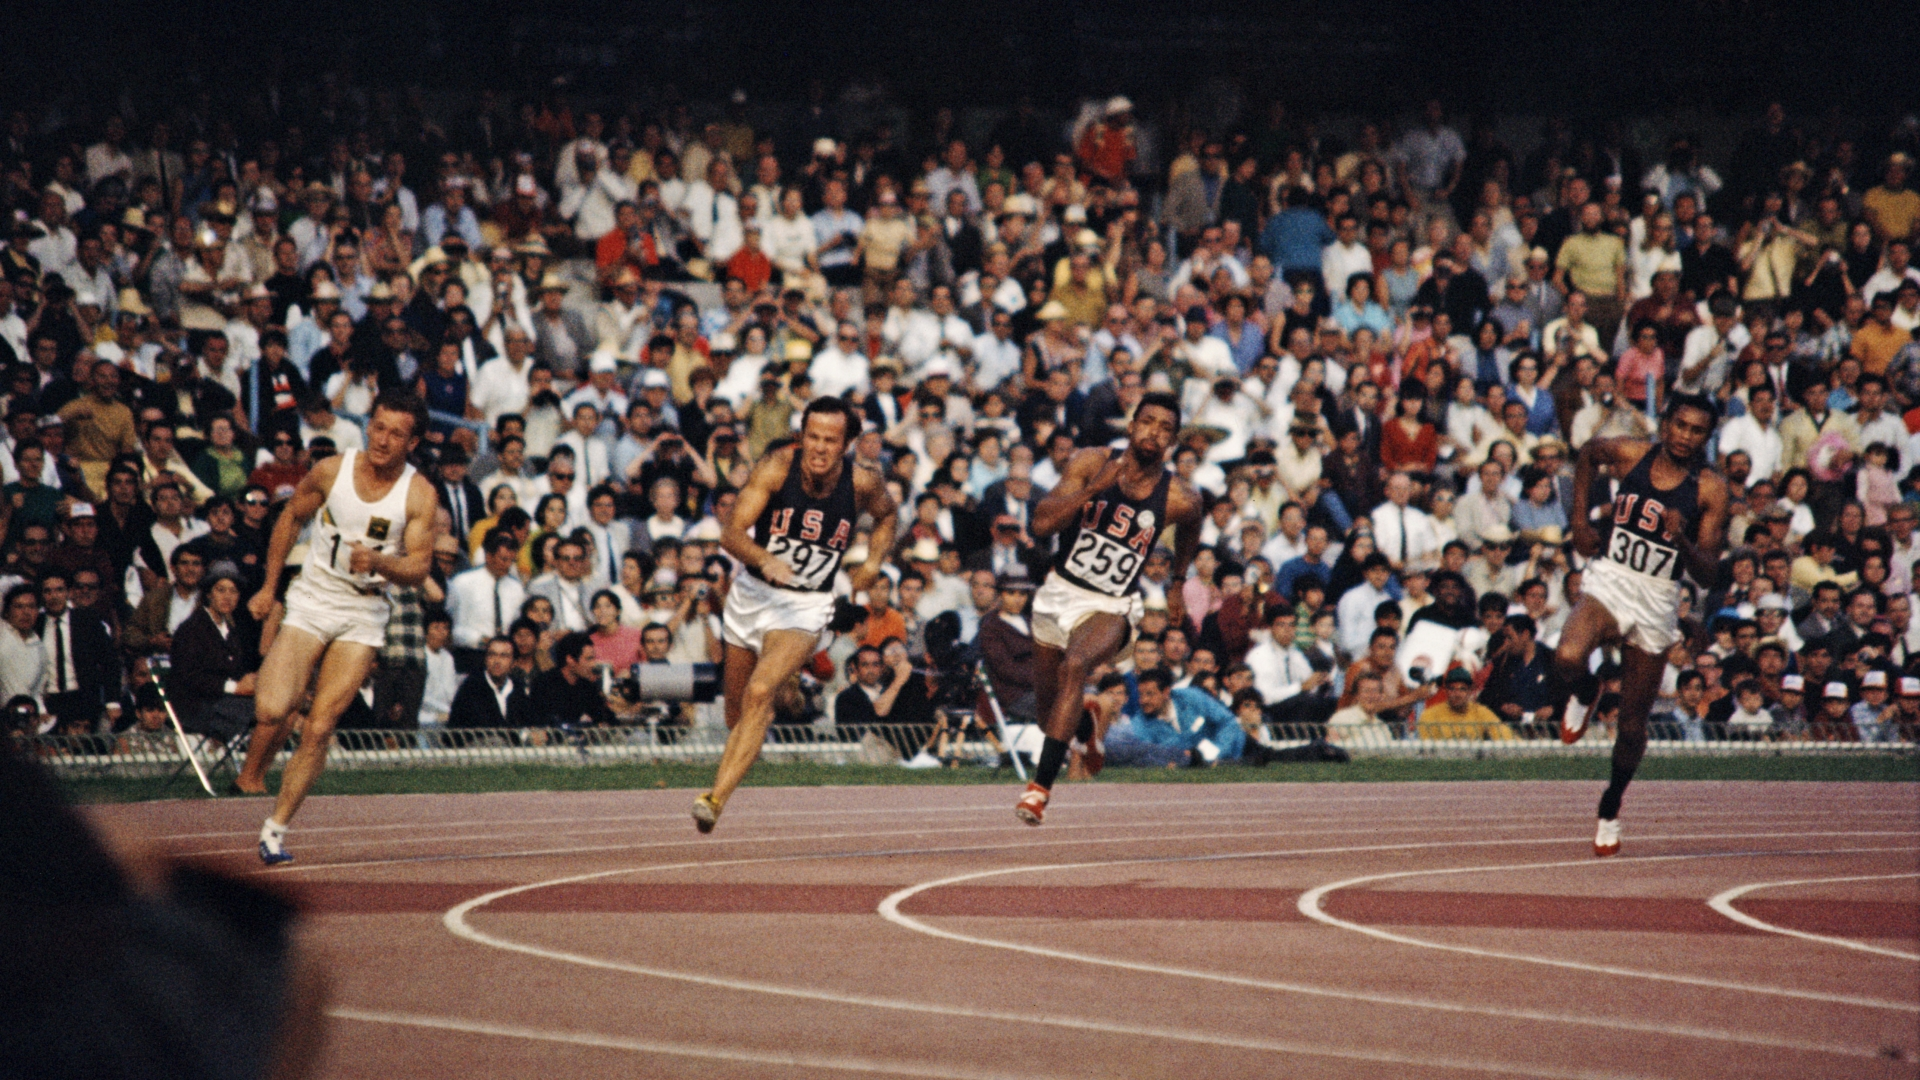 The final of the Men's 200 meter event at the 1968 Summer Games. From left to right: Peter Norman of Australia, and Larry Questad, John Carlos and Tommie Smith of the United States. (Credit: Rolls Press/Popperfoto/Getty Images)